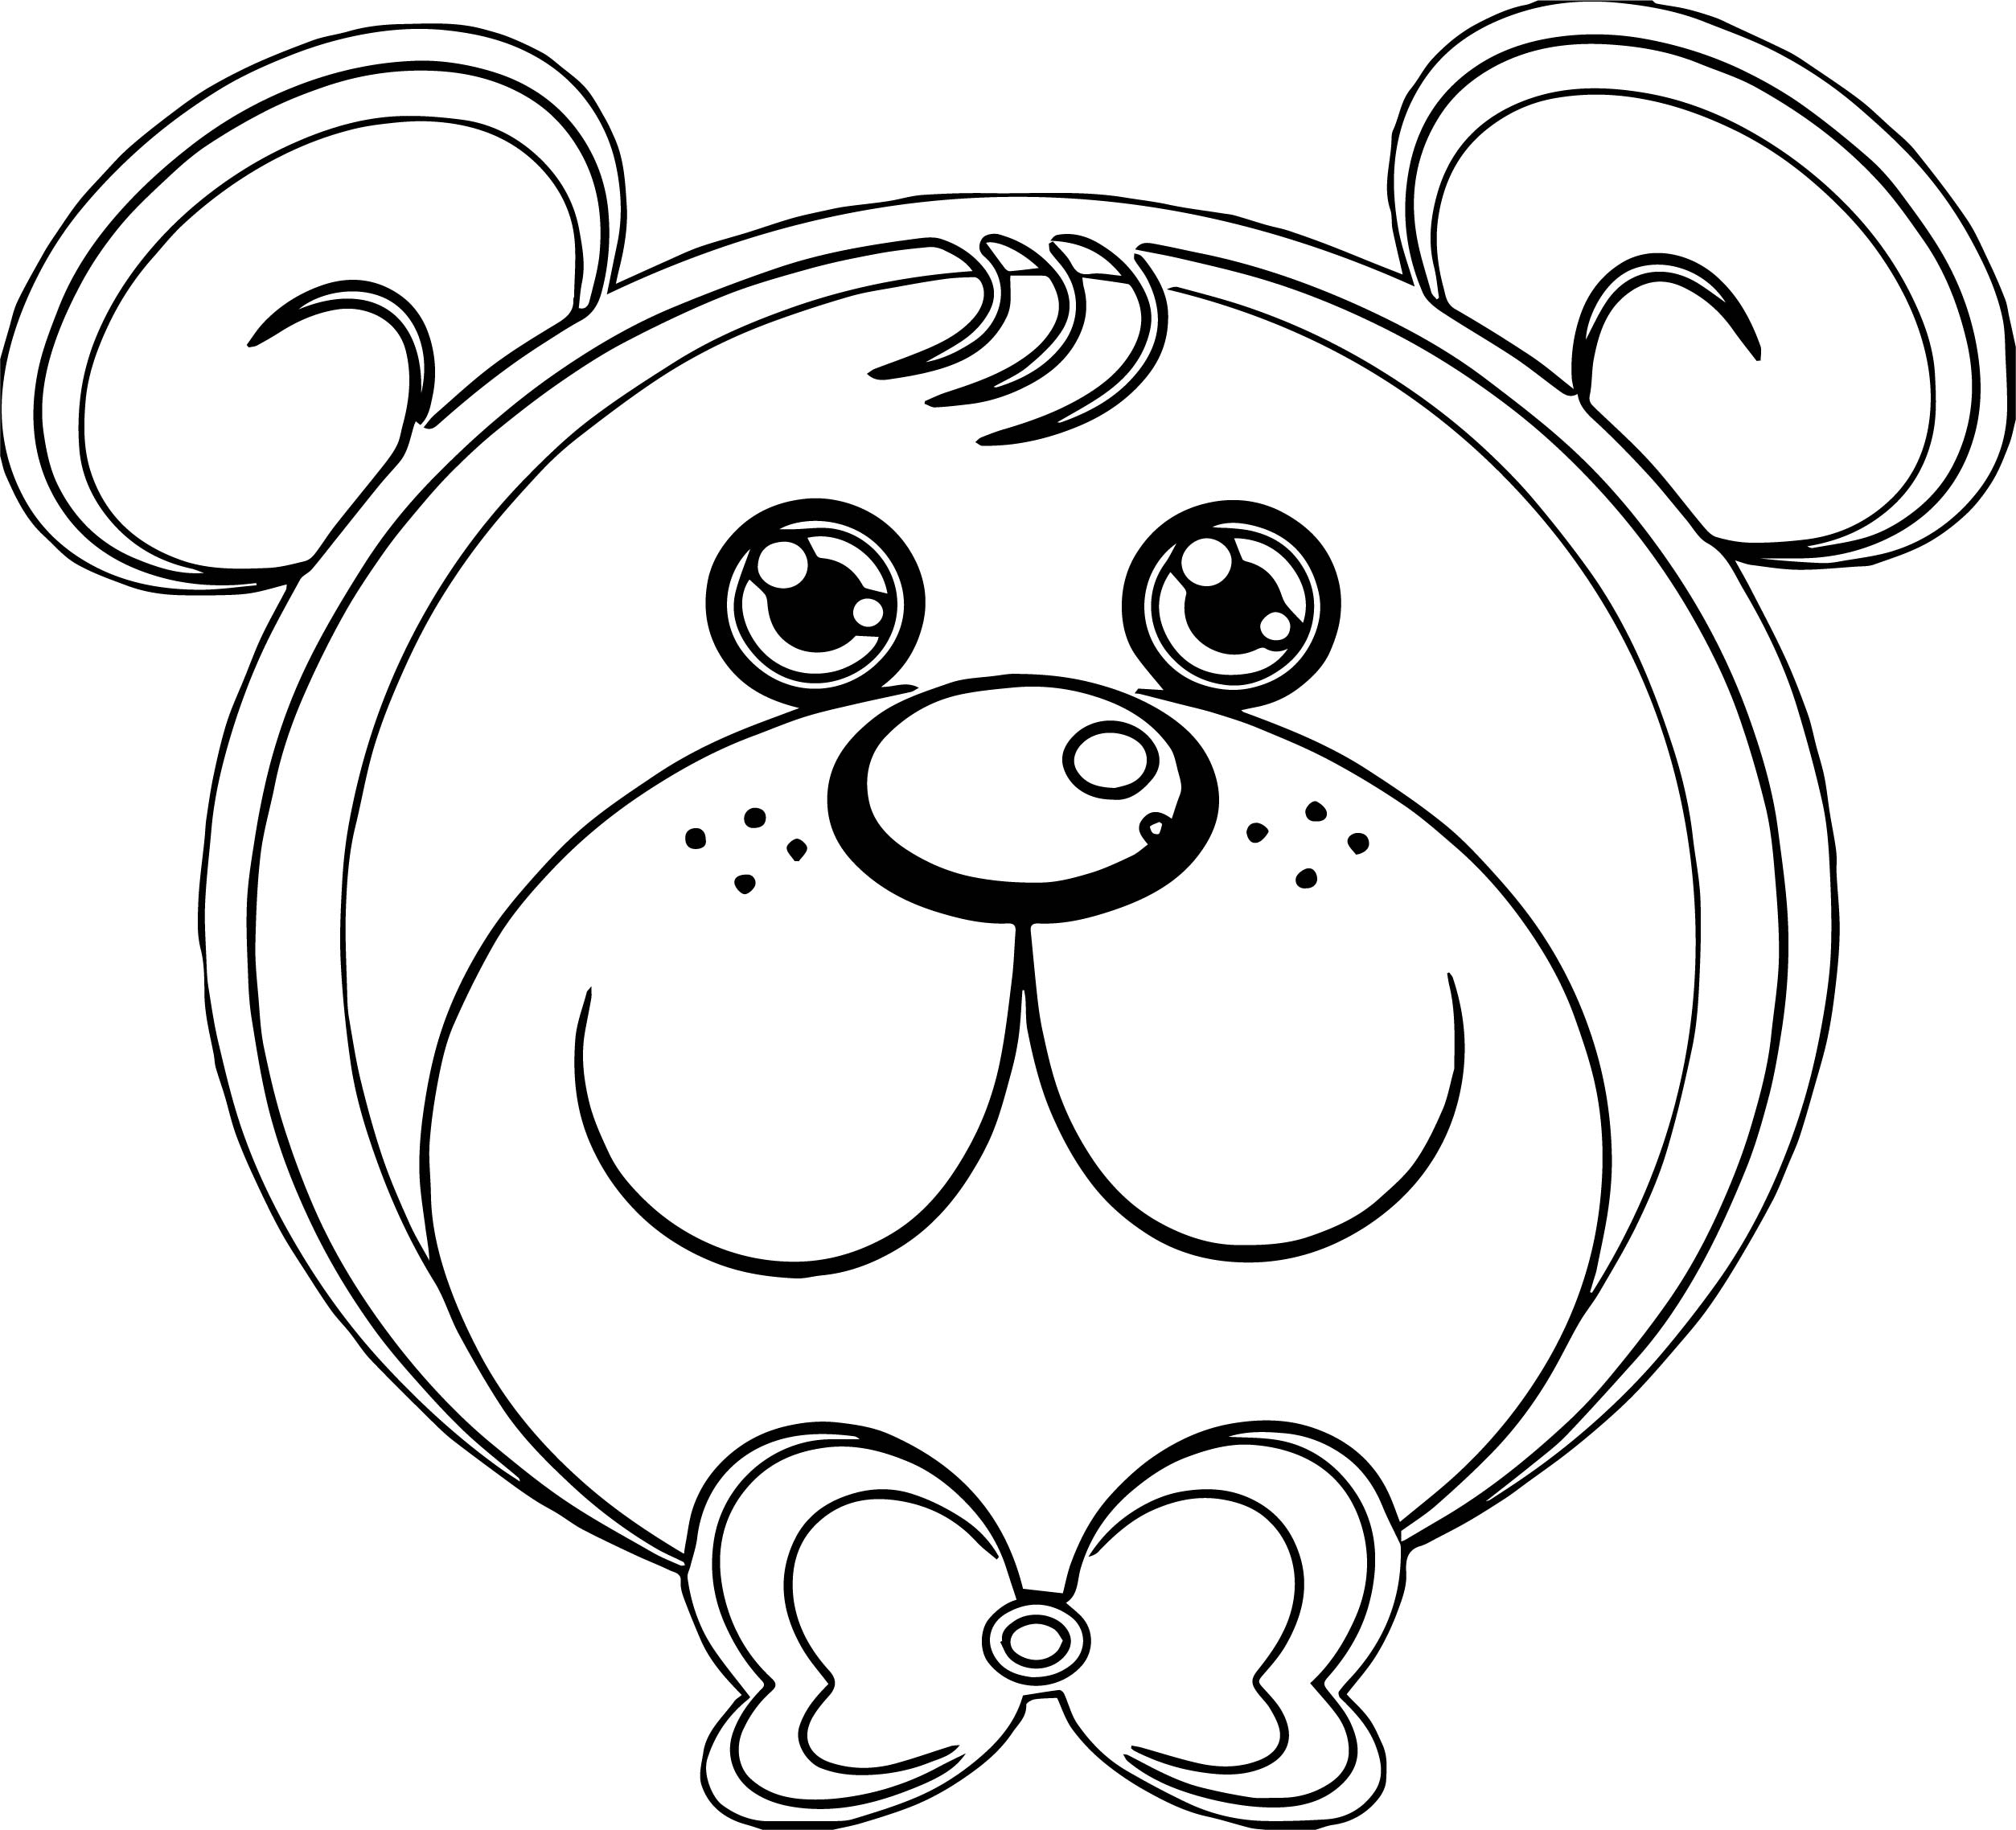 She Bear Coloring Page